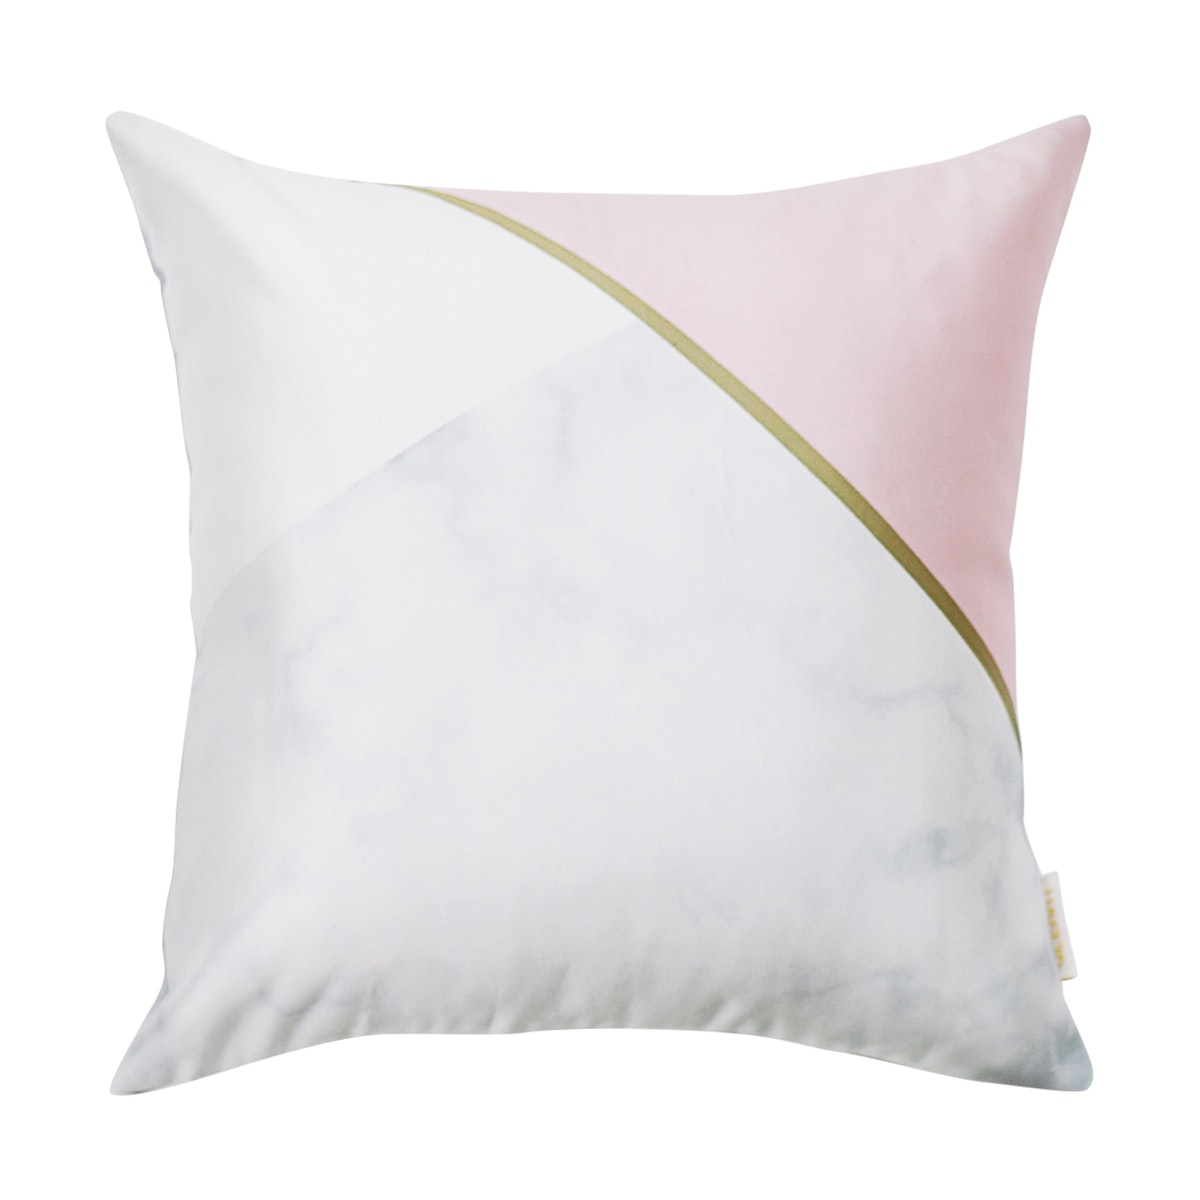 Glerry Home Decor Pink Bliss Cushion 40x40cm